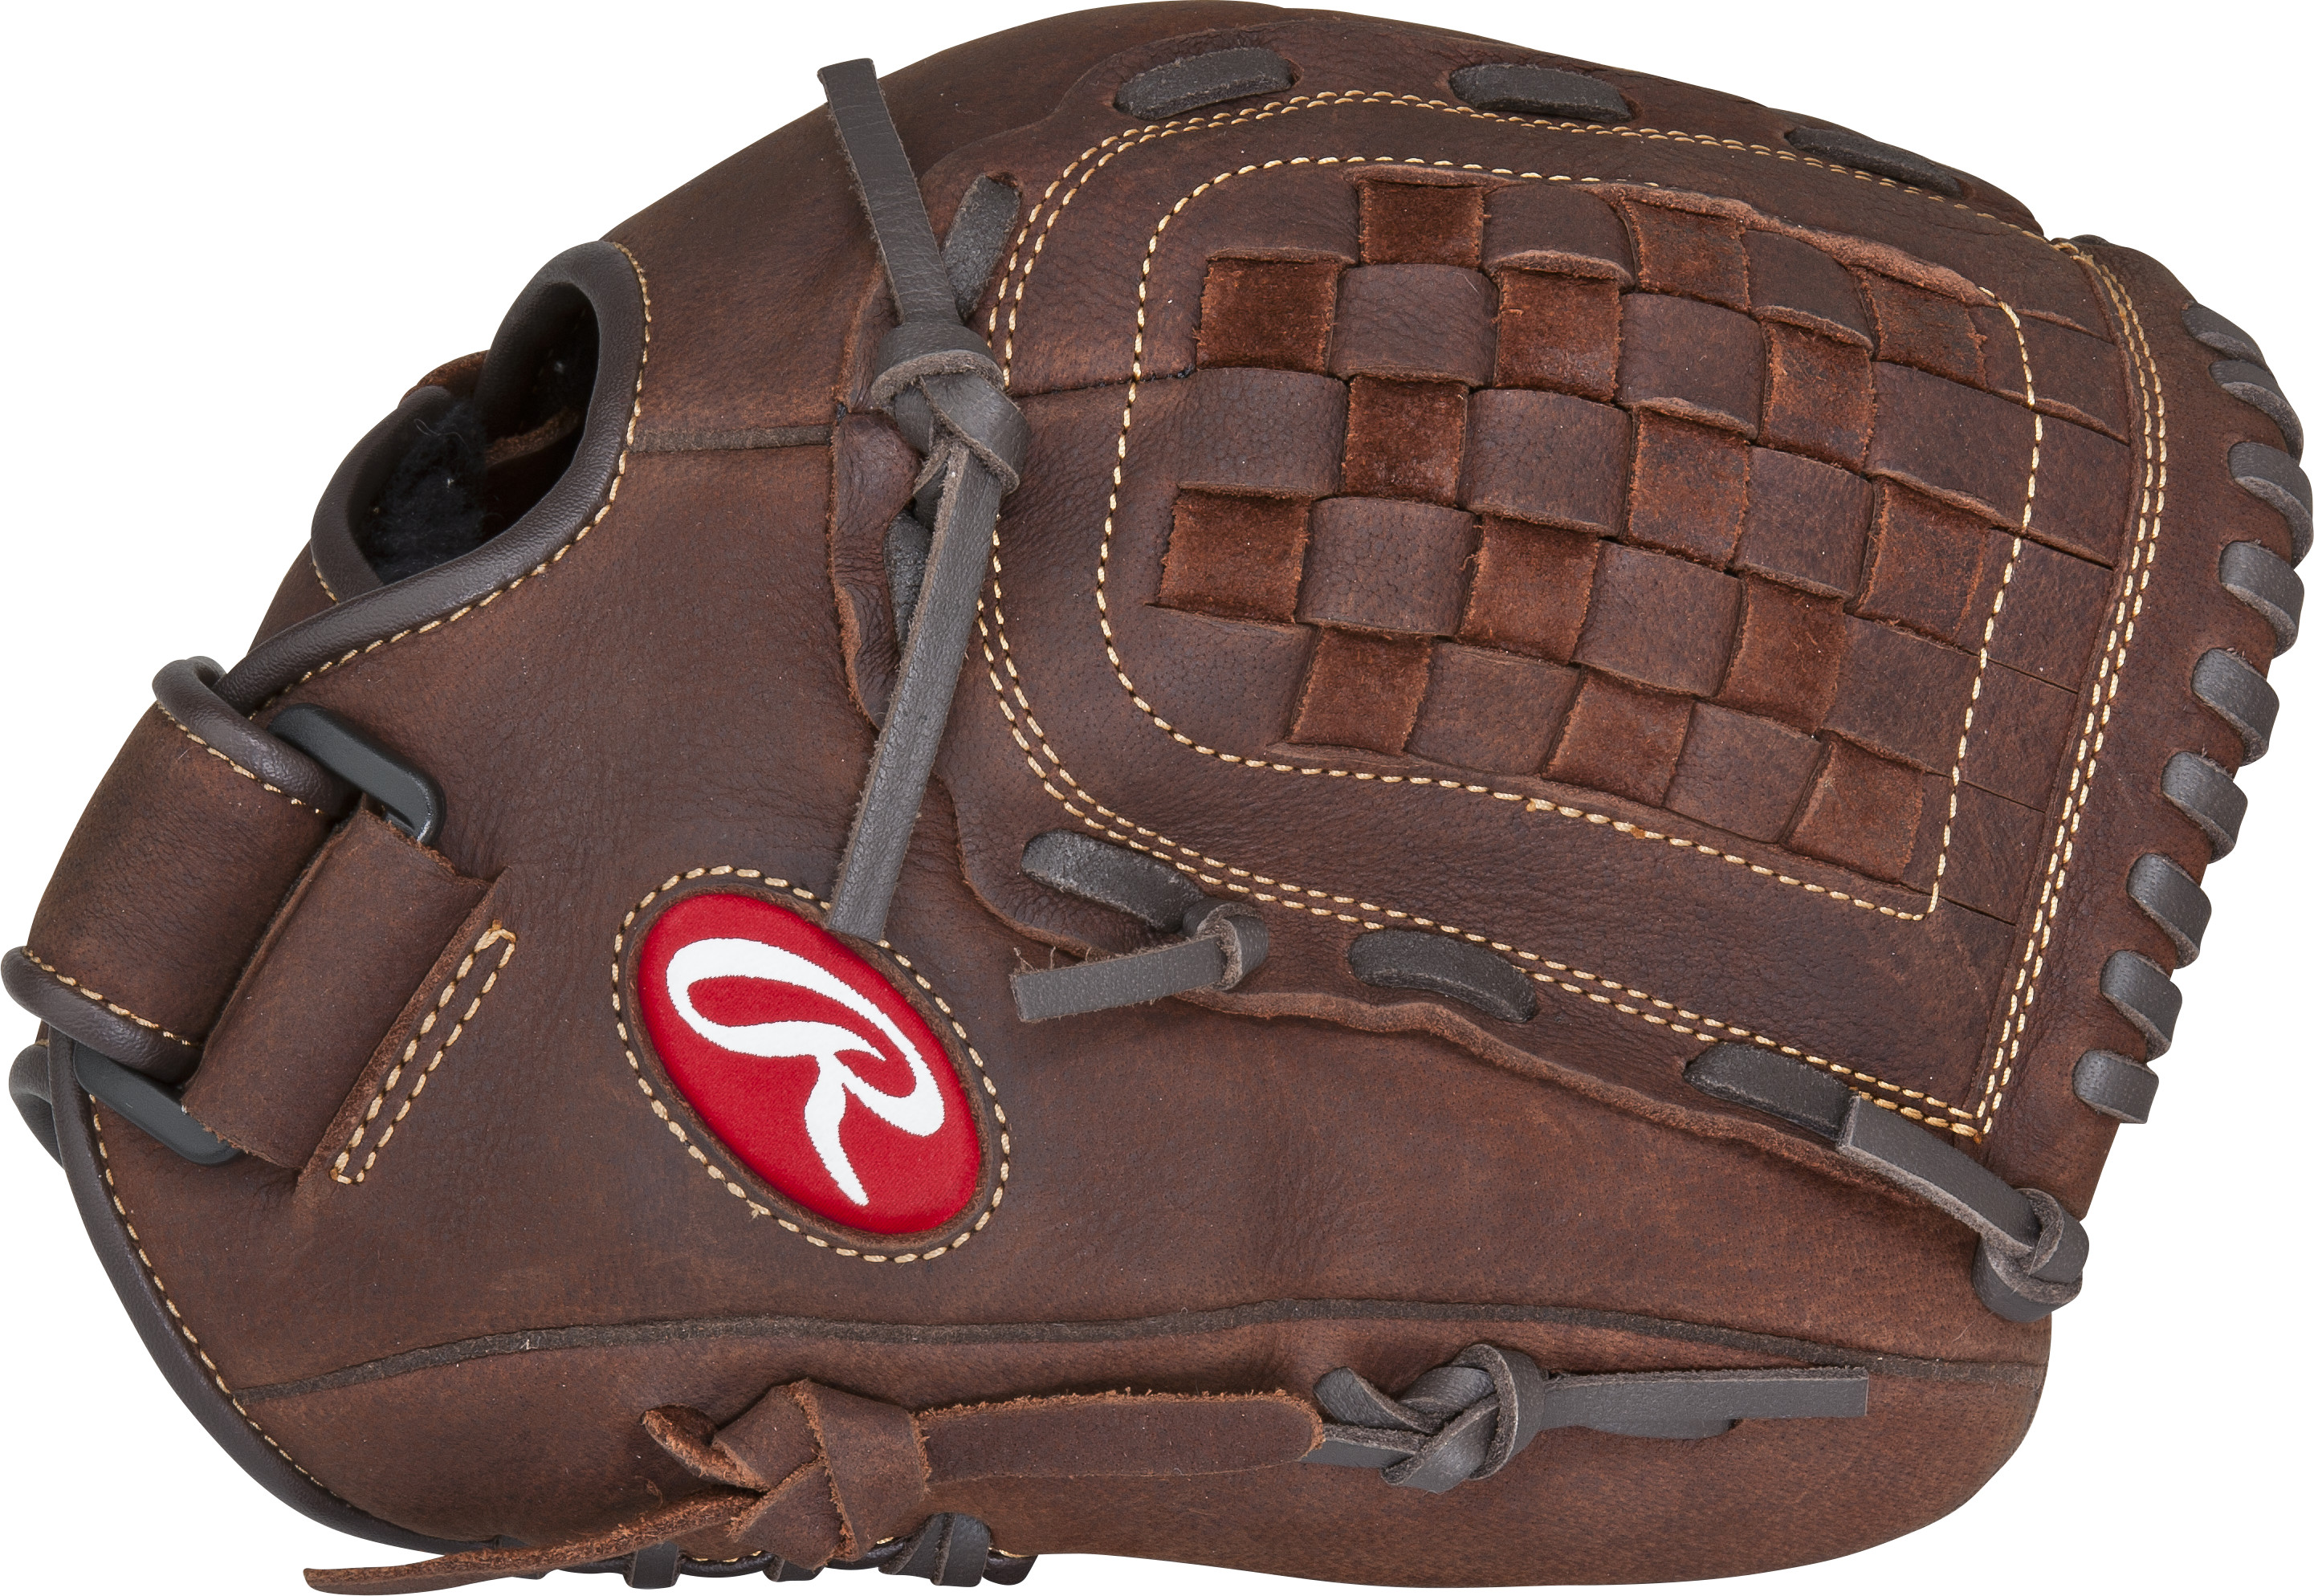 http://www.bestbatdeals.com/images/gloves/rawlings/P120BFL_thumb.jpg